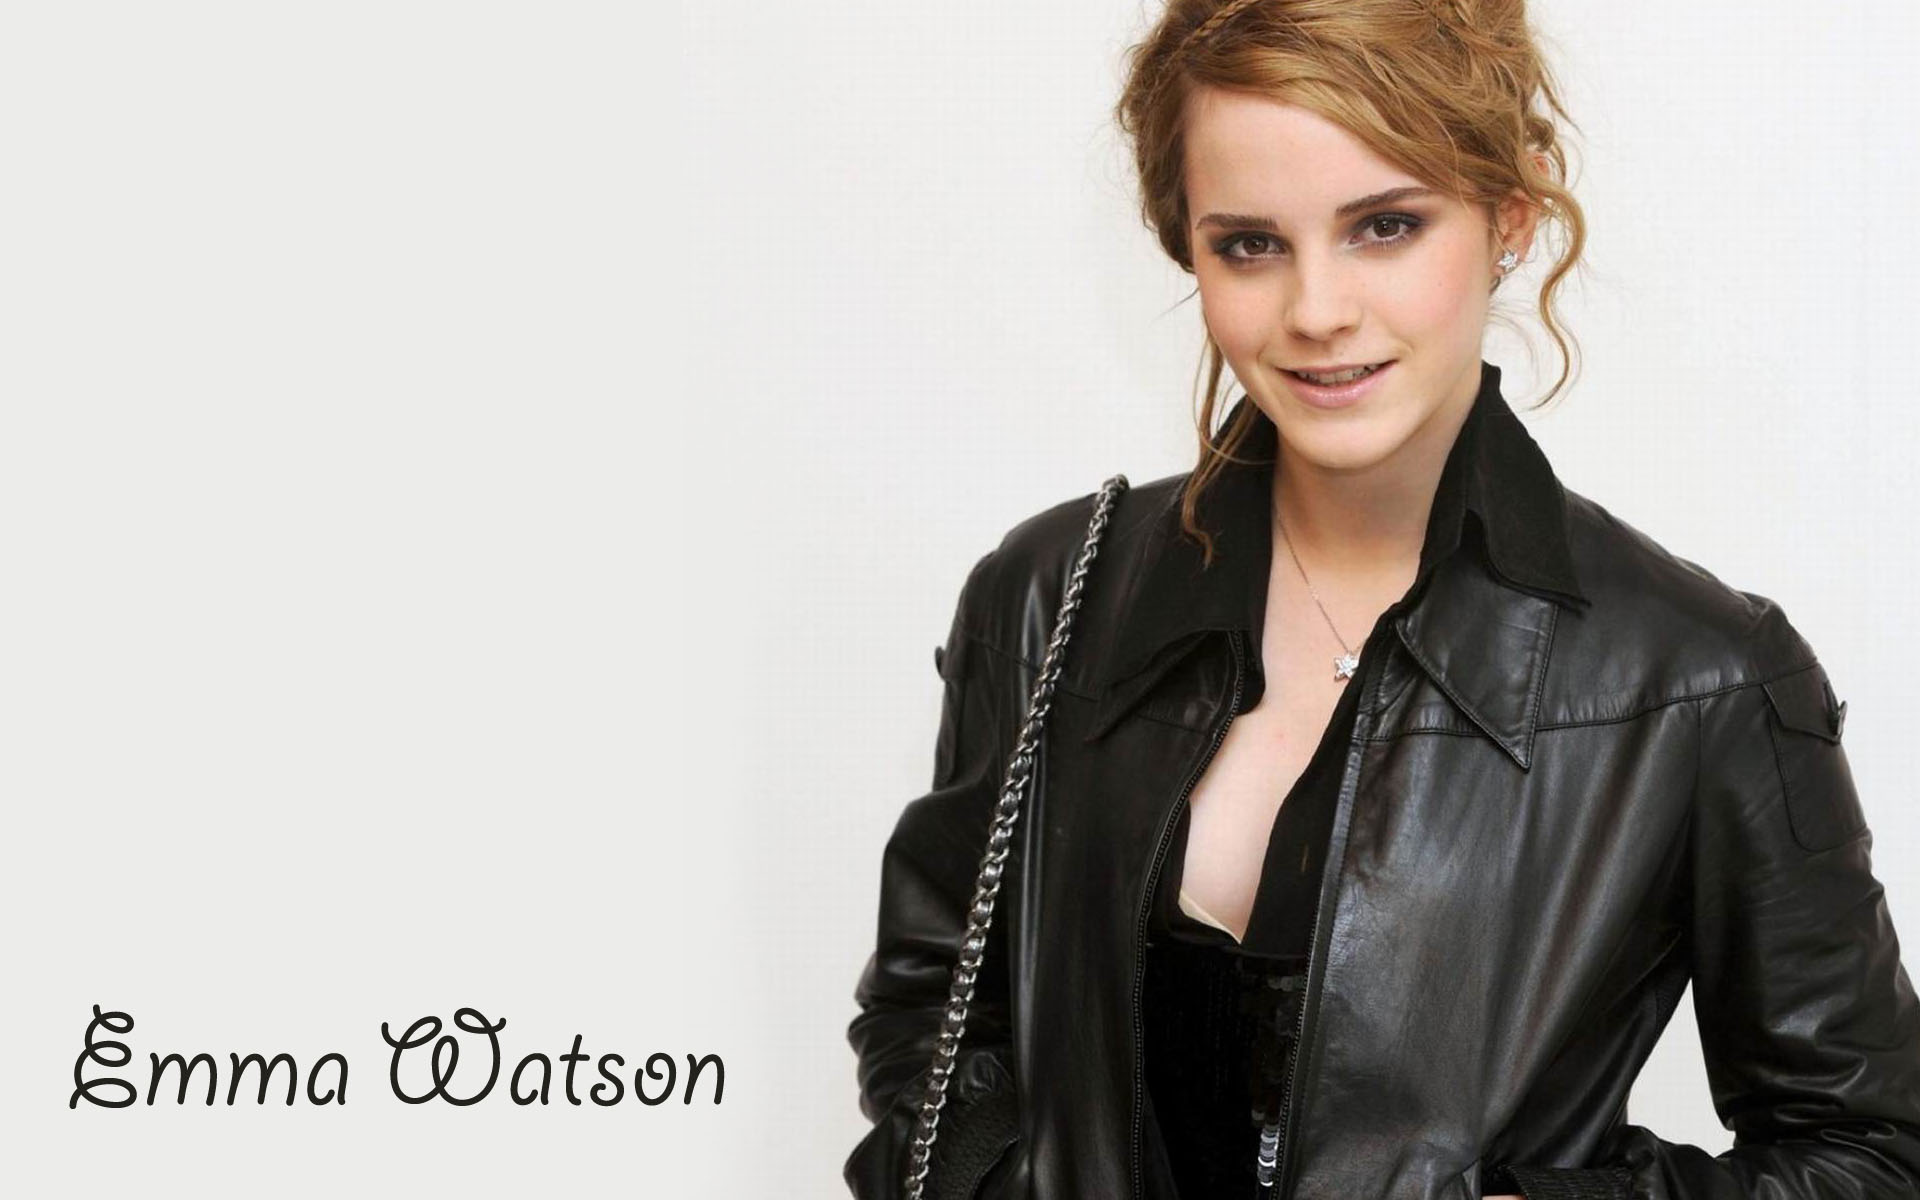 fantastic emma watson free background laptop hot face look pose hd